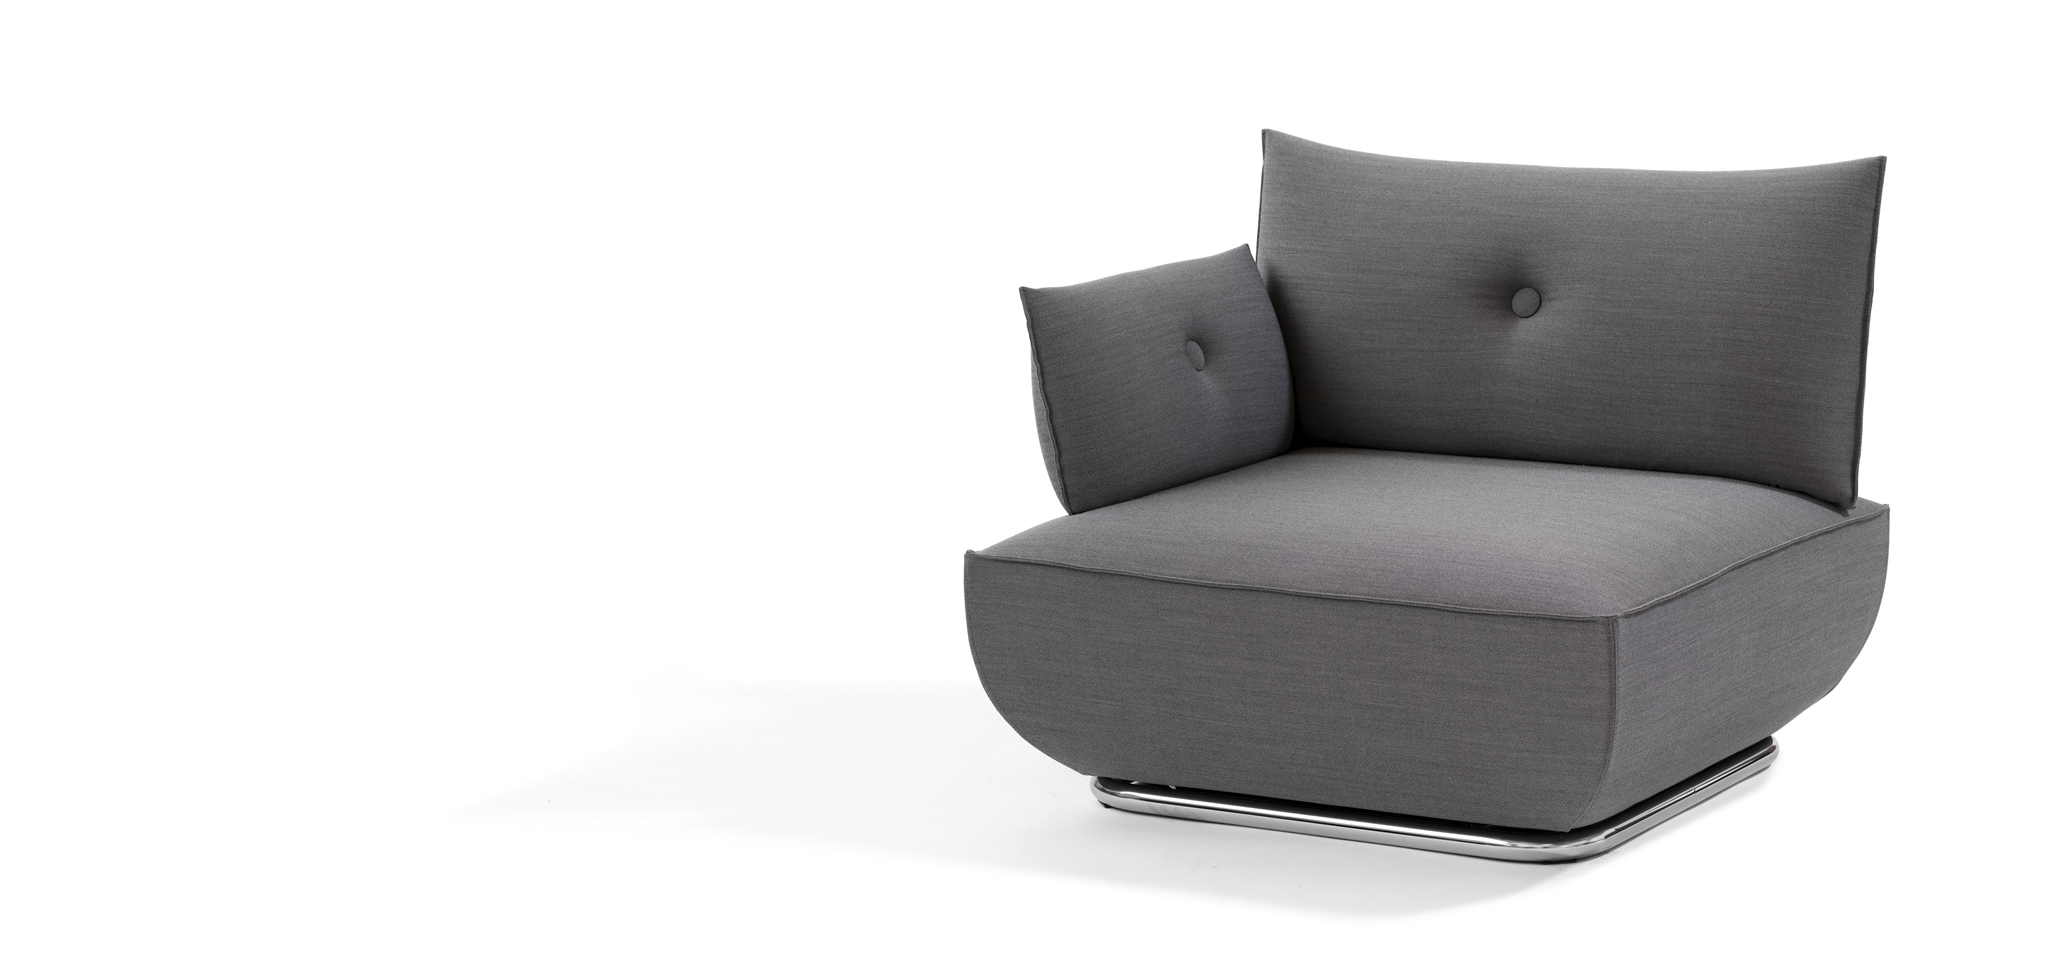 ... Sofa That Adapts Easily And Elegantly To The Setting In Which It Is  Used. Dunder Modular Seating Consists Of Five Different Sections U2013 Middle,  Corner, ...